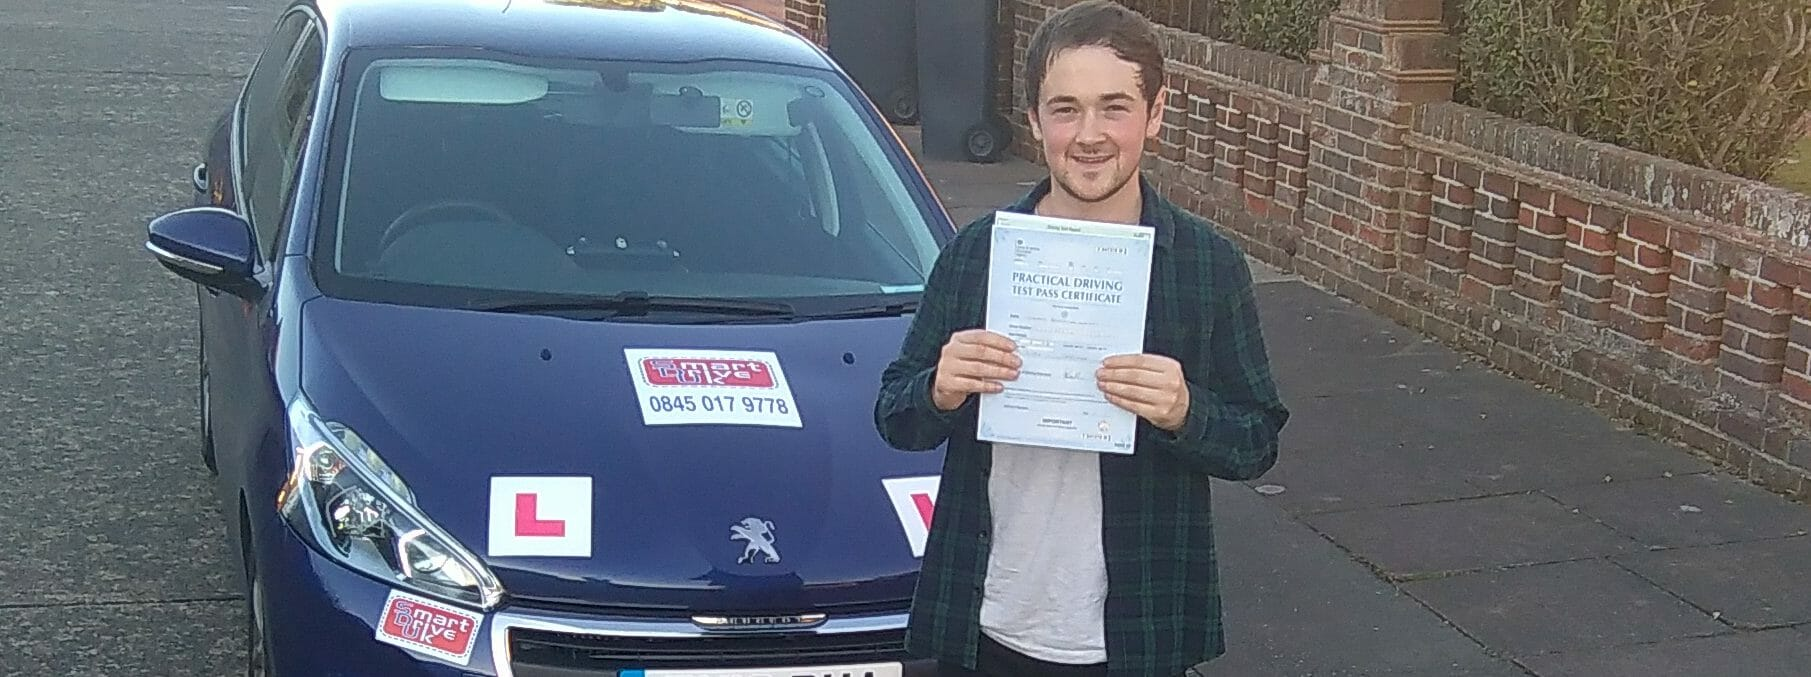 Zero Faults & First Time Pass!! Well Done Tom Walker of Worthing